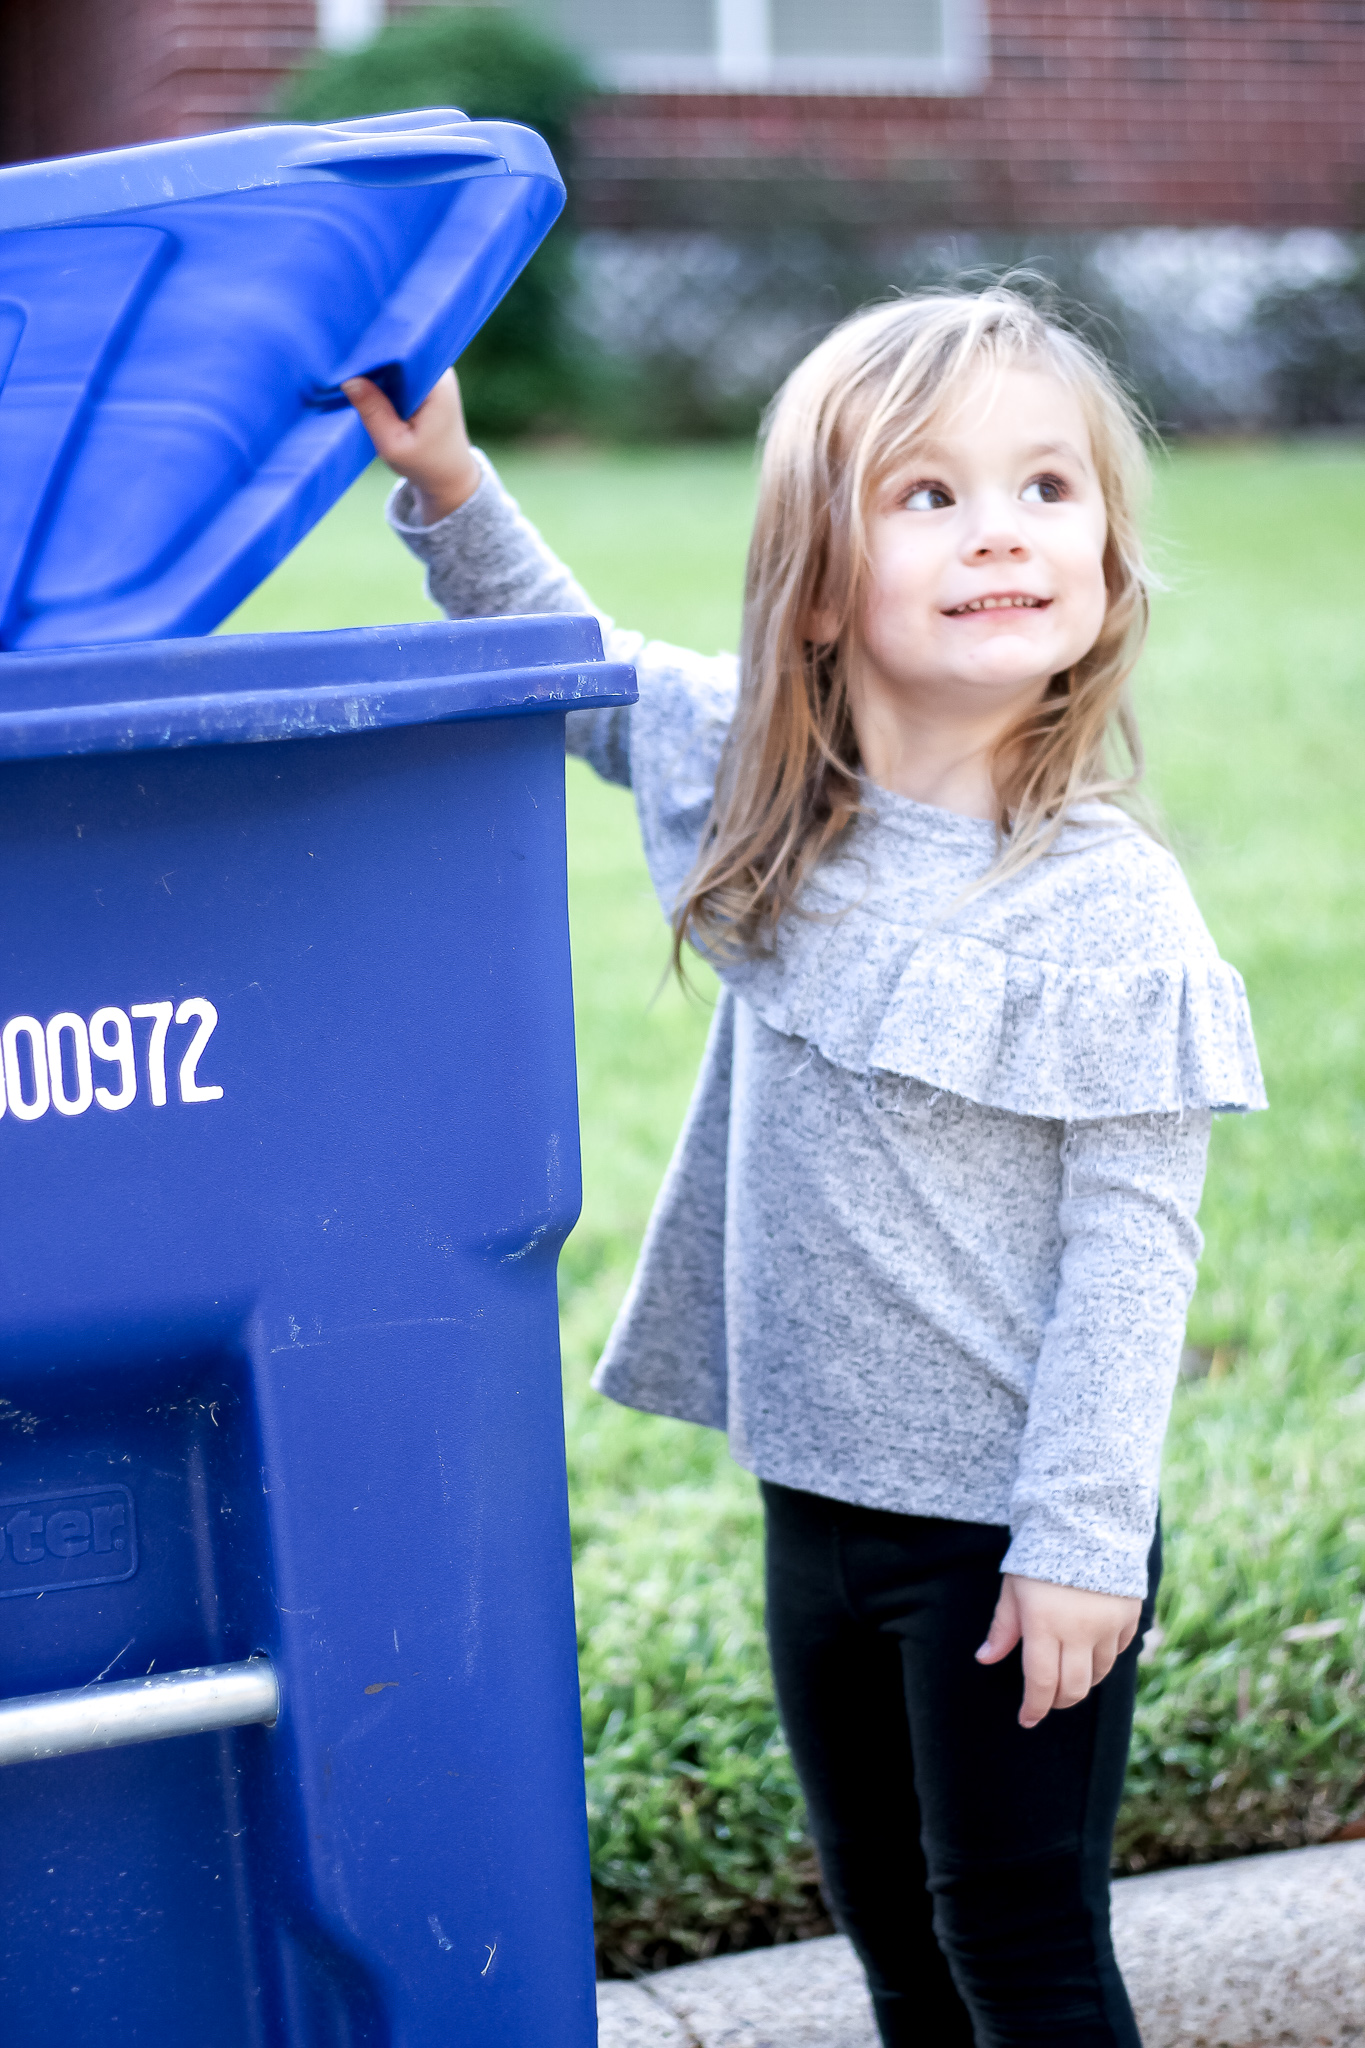 25 Random Acts Of Kindness For Kids